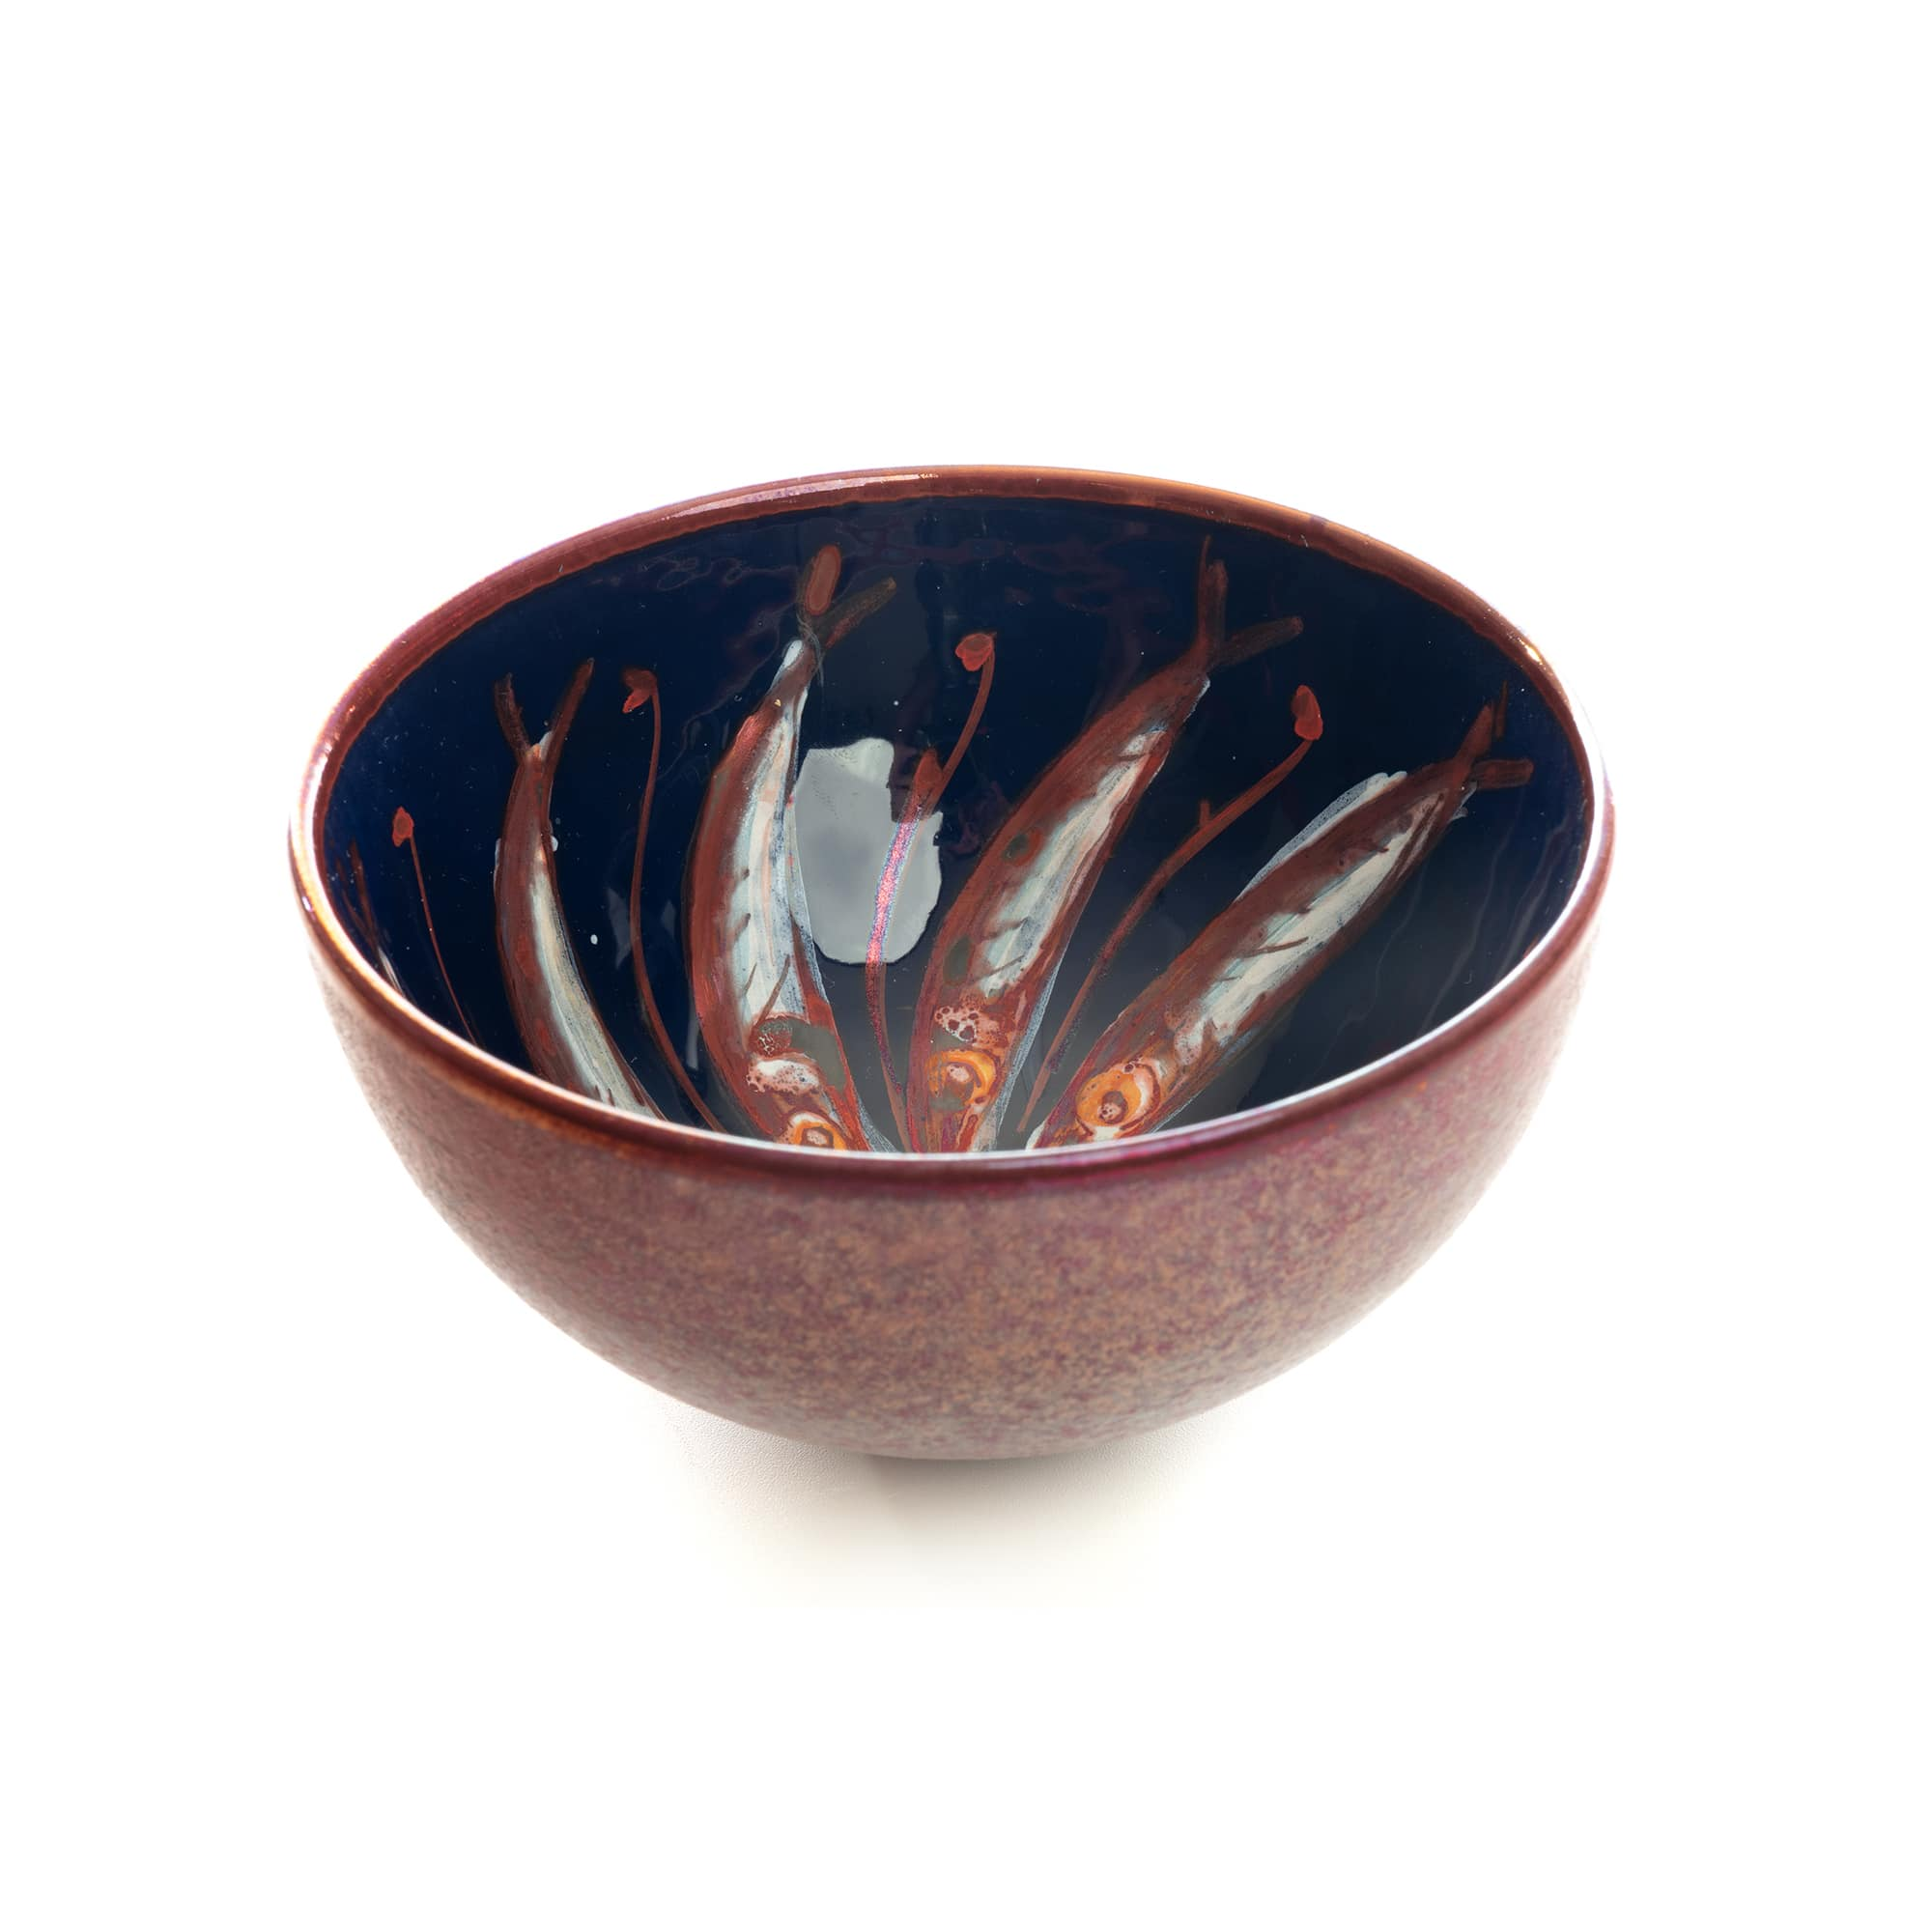 Vignoli Small Bowl with Painted Fish Design 26